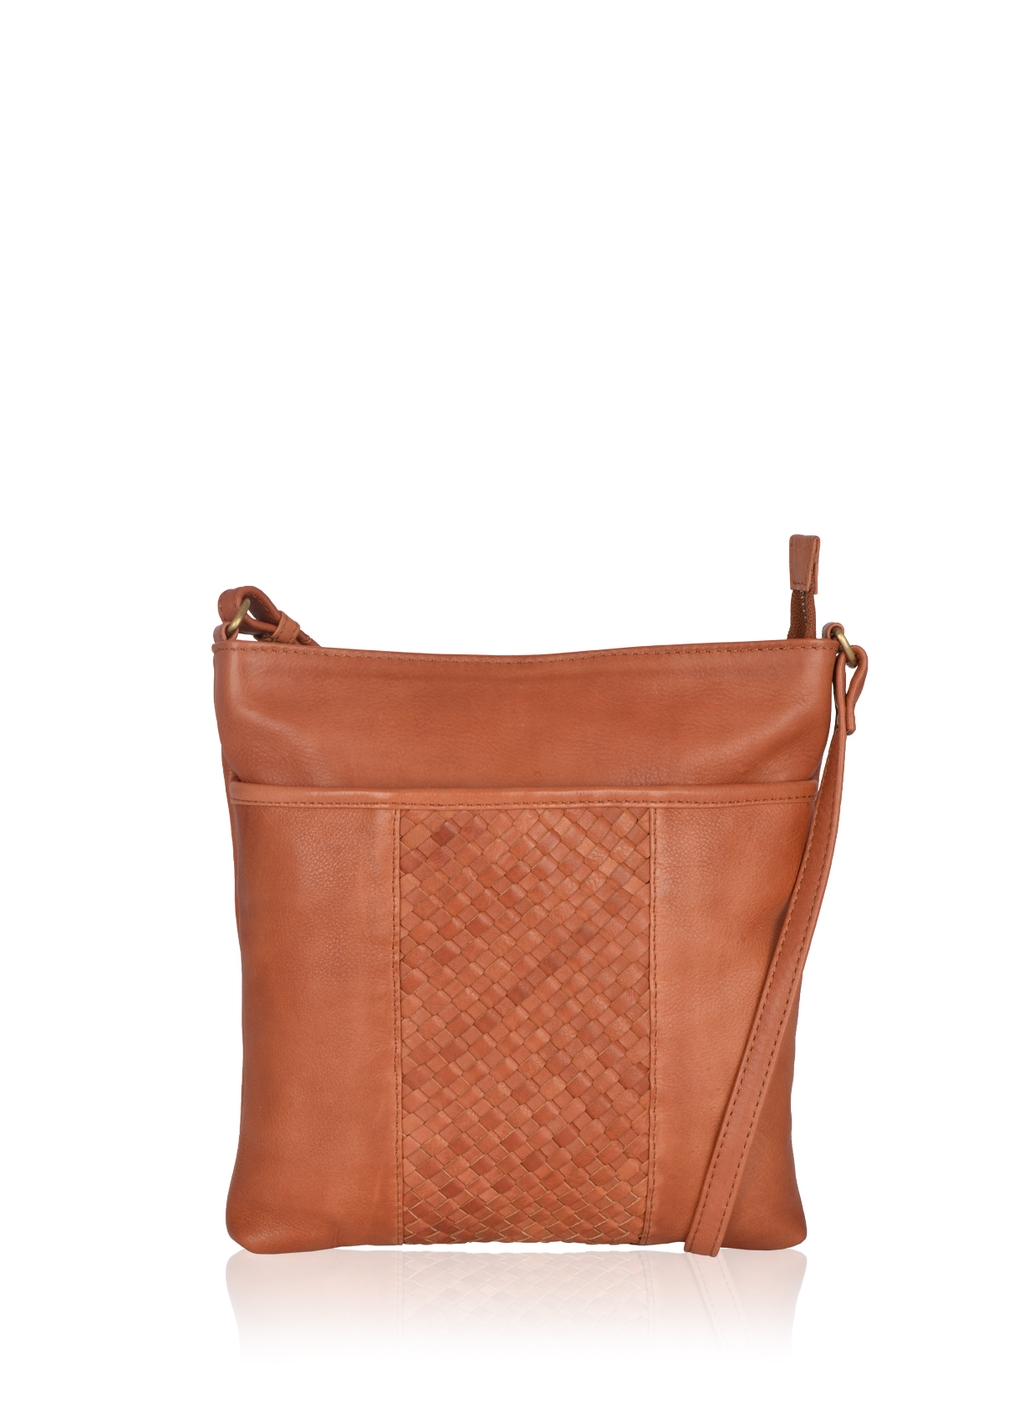 Gosforth Classic Leather Cross Body Bag in Tan